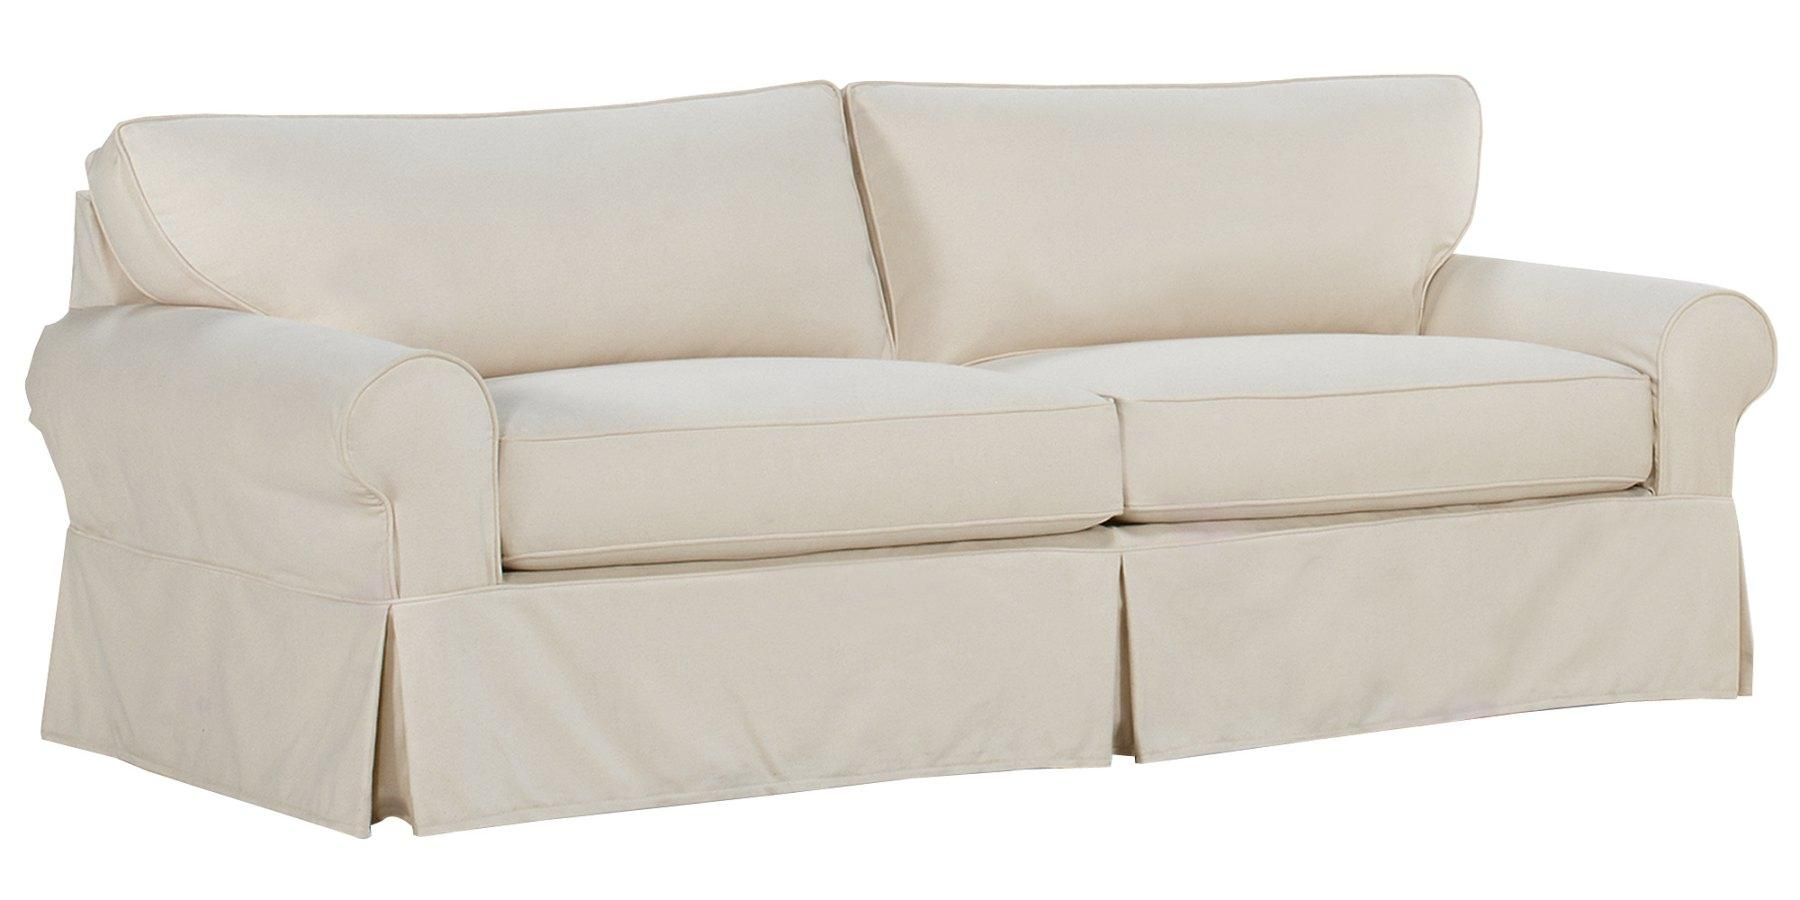 Oversized Sofas And Sofa Slipcover Furniture Online With Large Sofa Slipcovers (View 1 of 23)